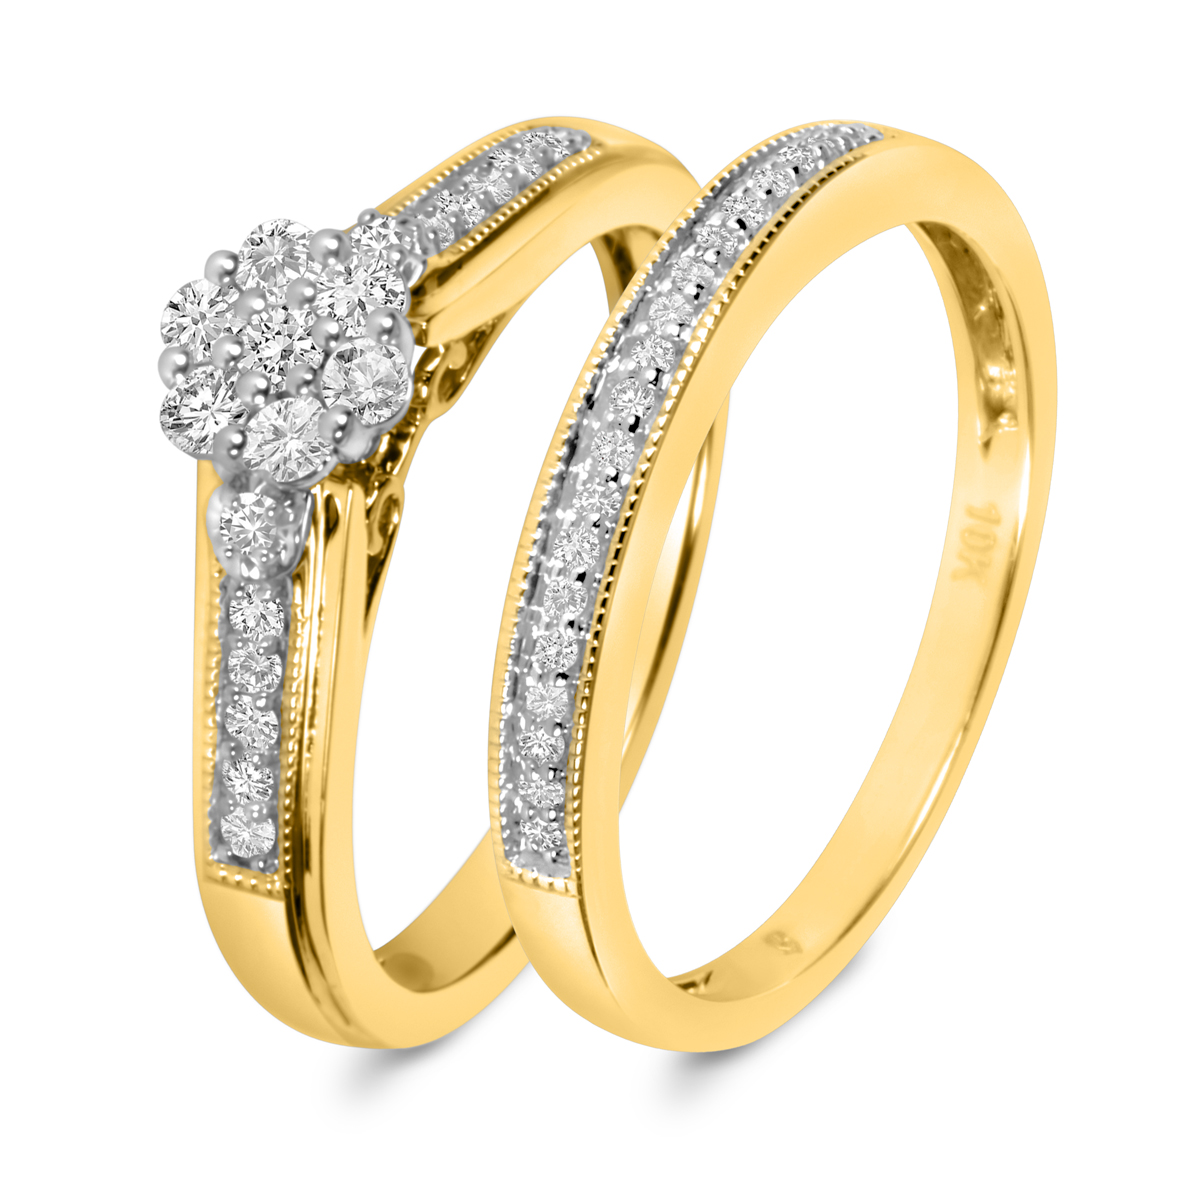 1/3 CT. T.W. Diamond Ladies' Bridal Wedding Ring Set 14K Yellow Gold